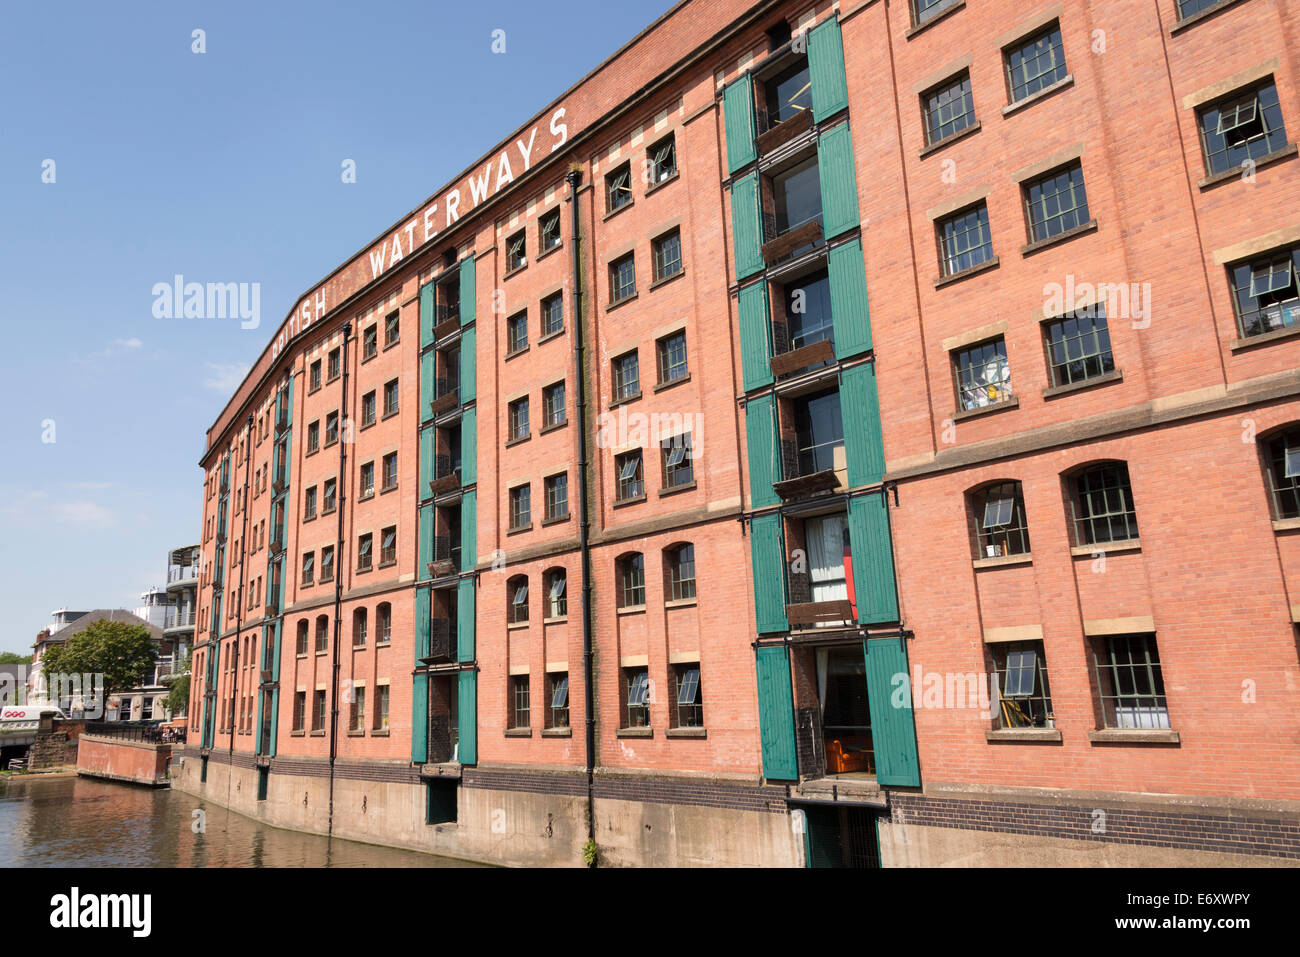 The British Waterways Building (now home to the Glee Club) Nottingham, Nottinghamshire, England, UK. - Stock Image